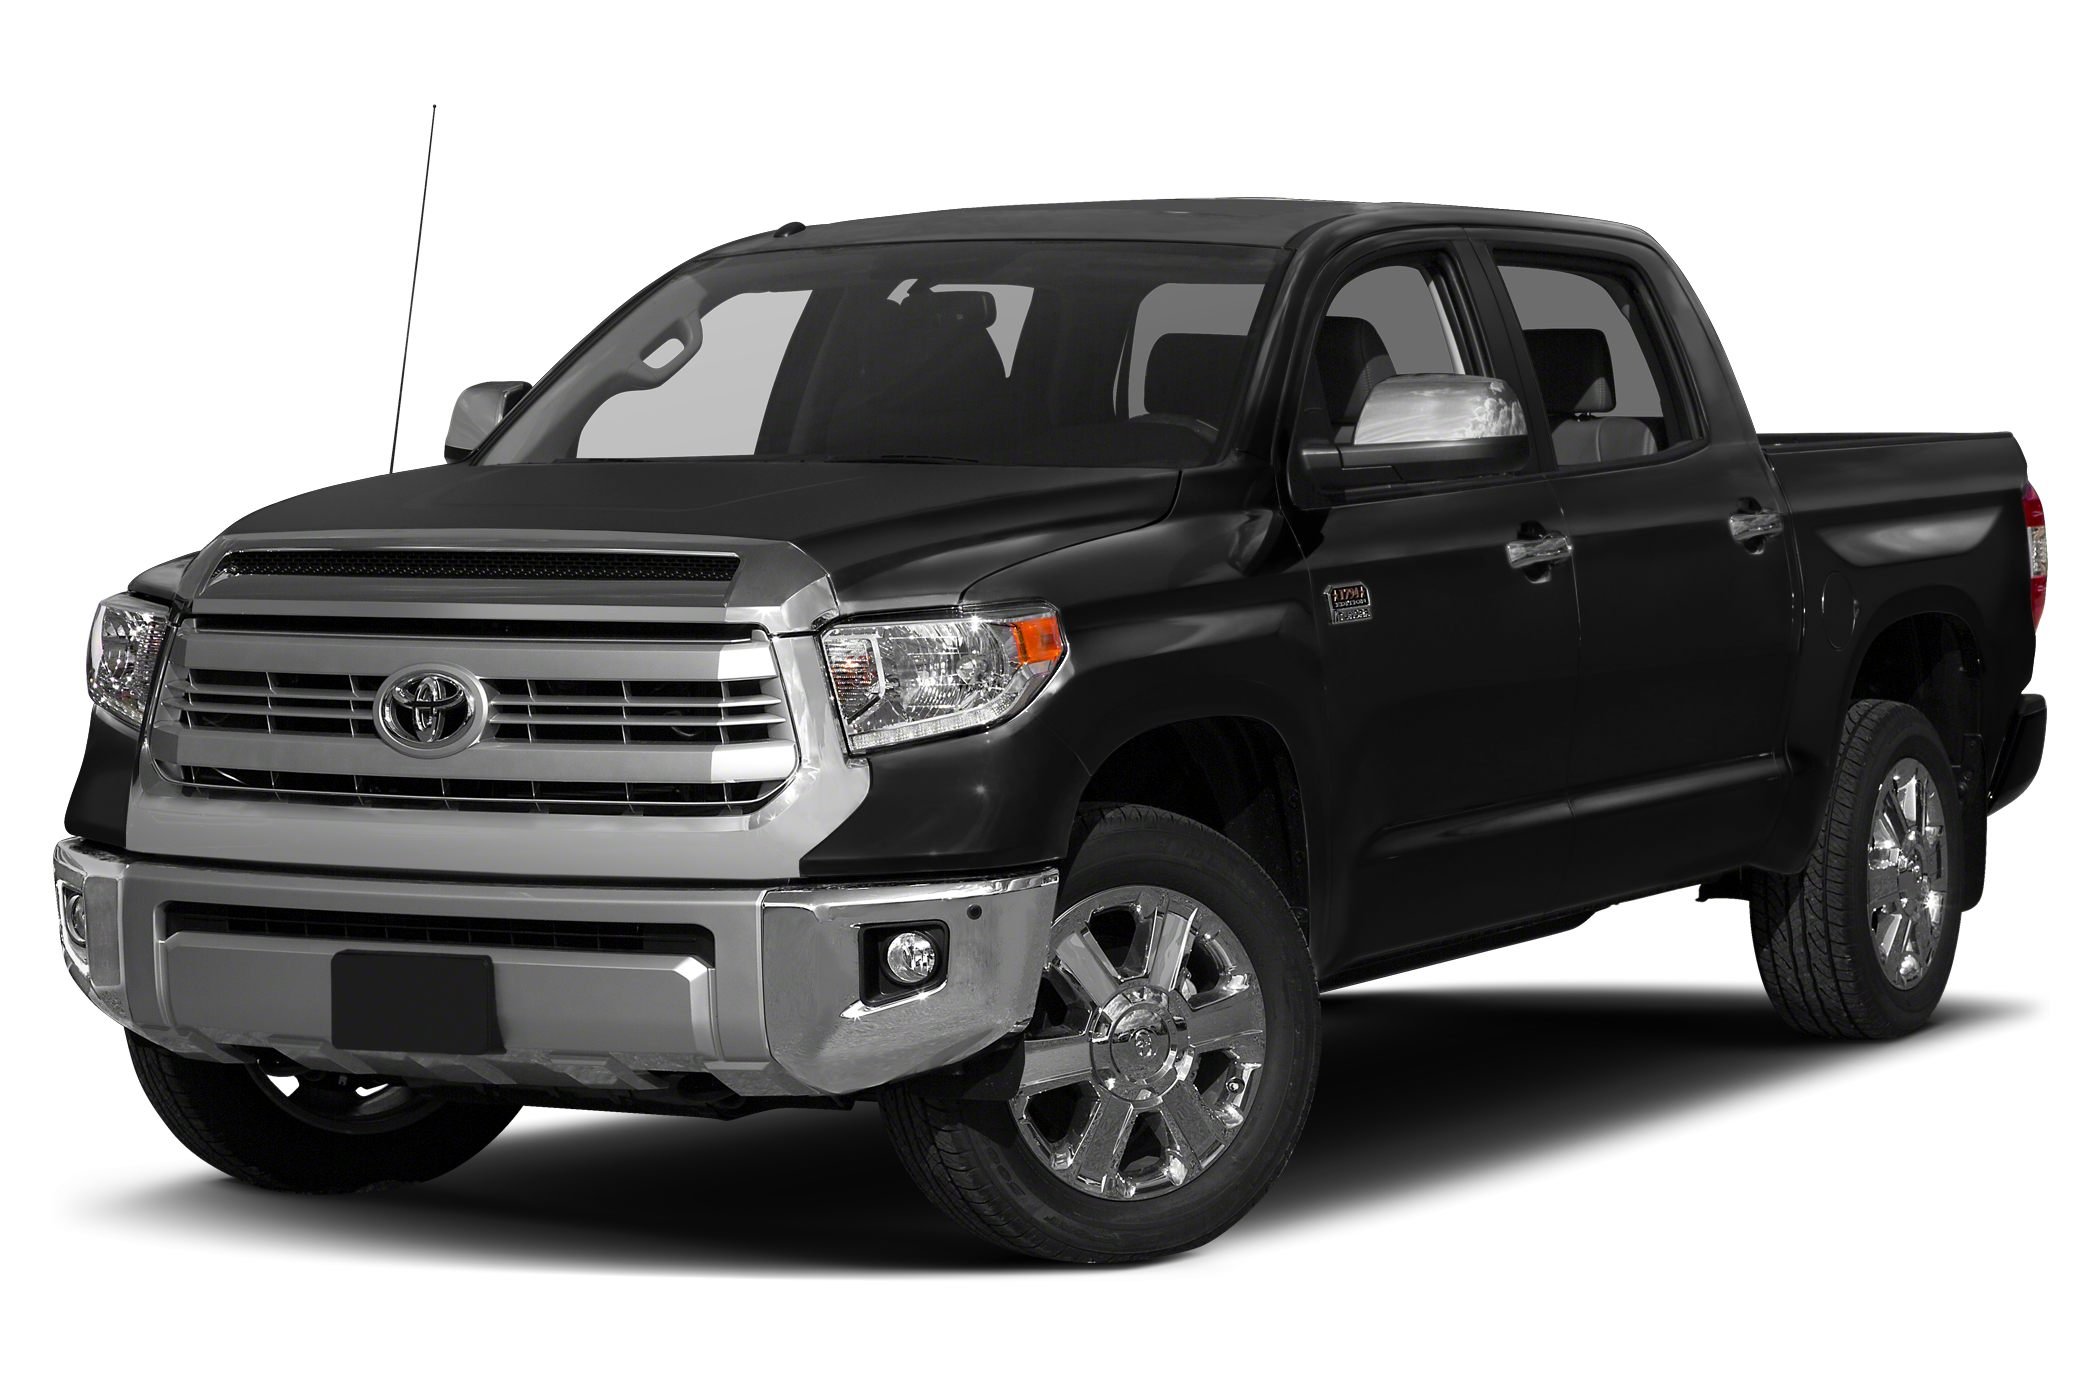 2014 Toyota Tundra 1794 CARFAX 1-Owner Navigation Sunroof HeatedCooled Seats Back-Up Camera